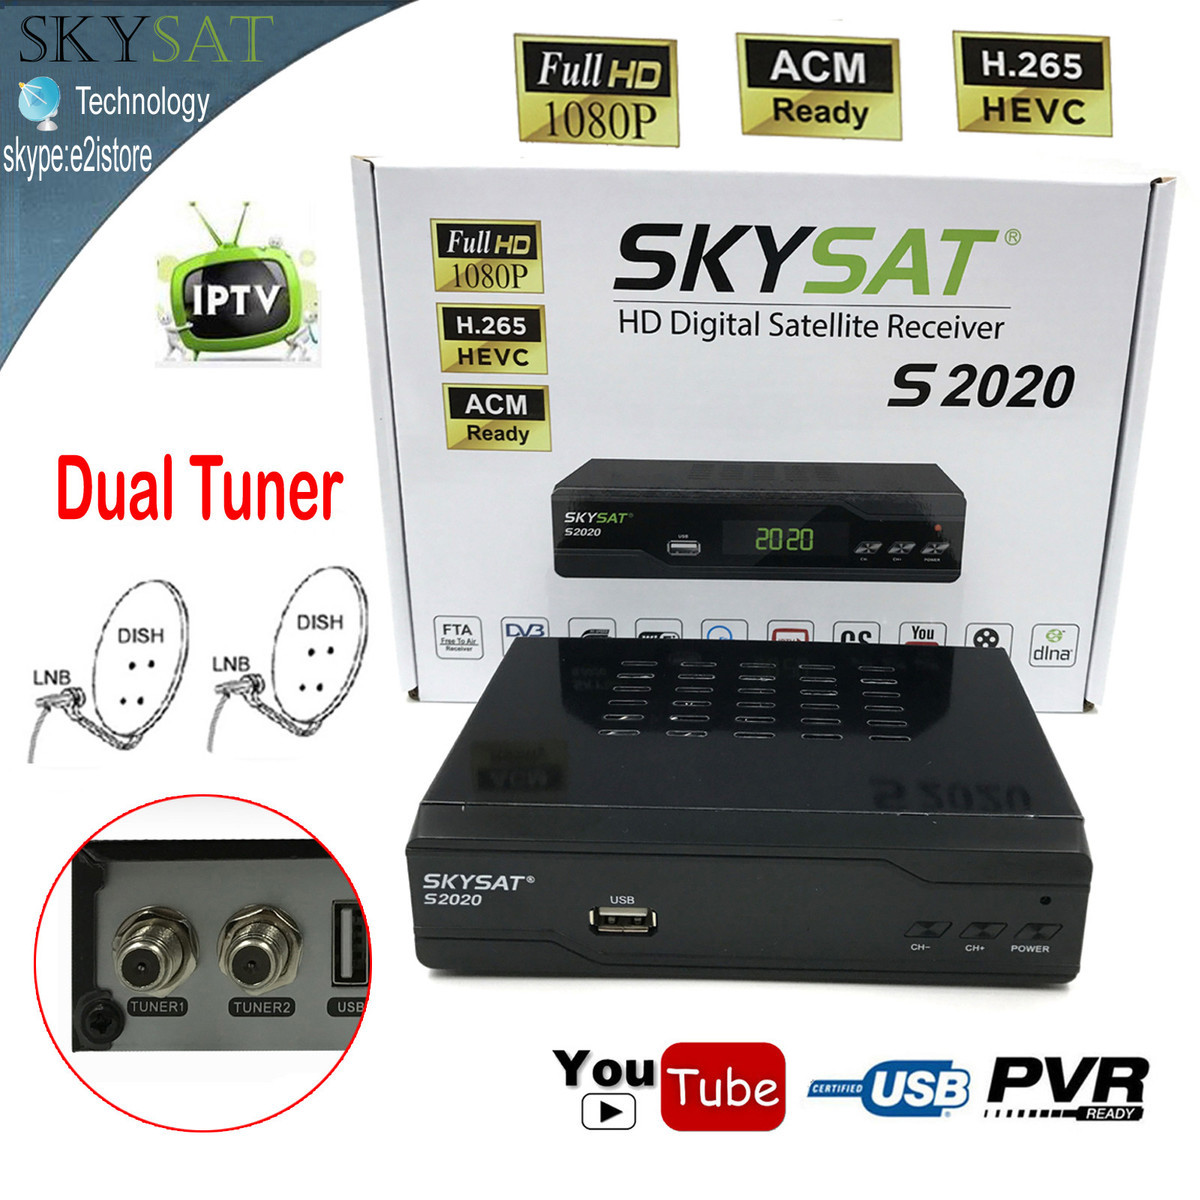 skysat dual dish twin tuner avc mpeg 4 digital satellite receiver acm most stable server. Black Bedroom Furniture Sets. Home Design Ideas